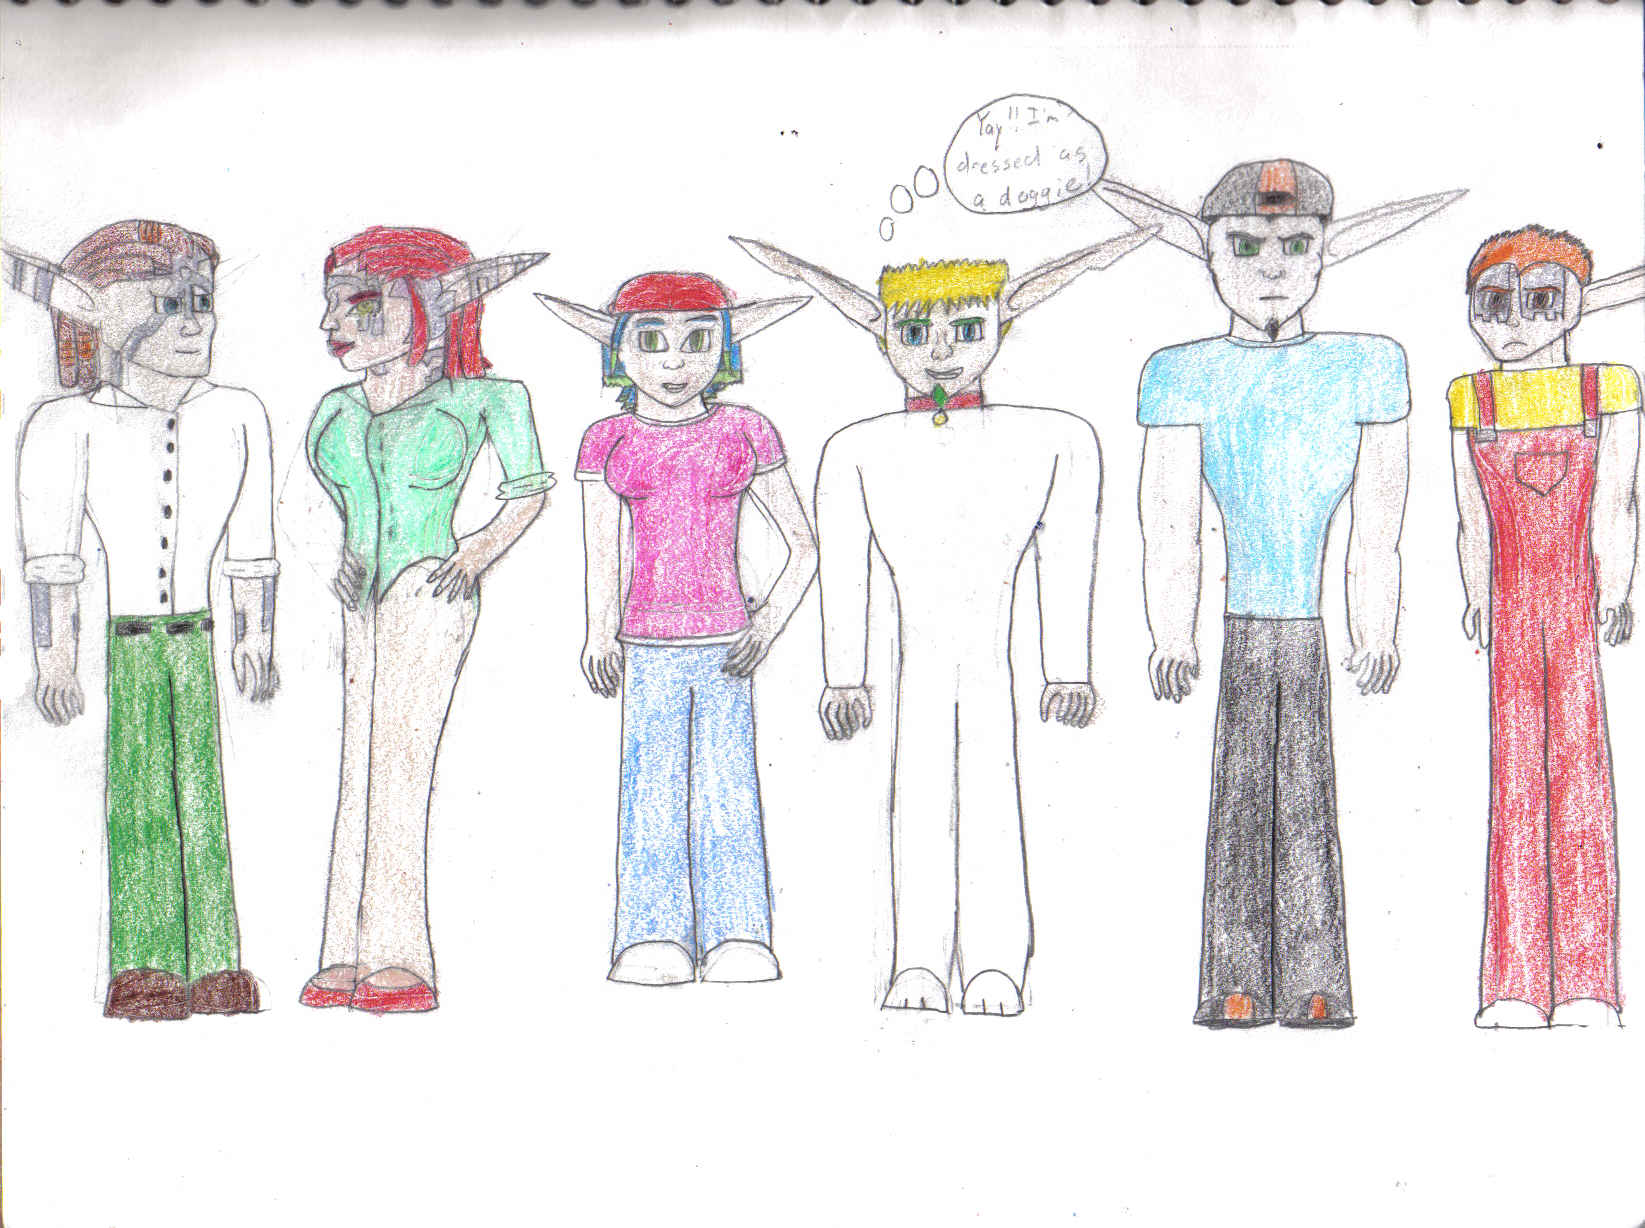 Jak Characters Dressed As The Family Guy Characters by jusedr